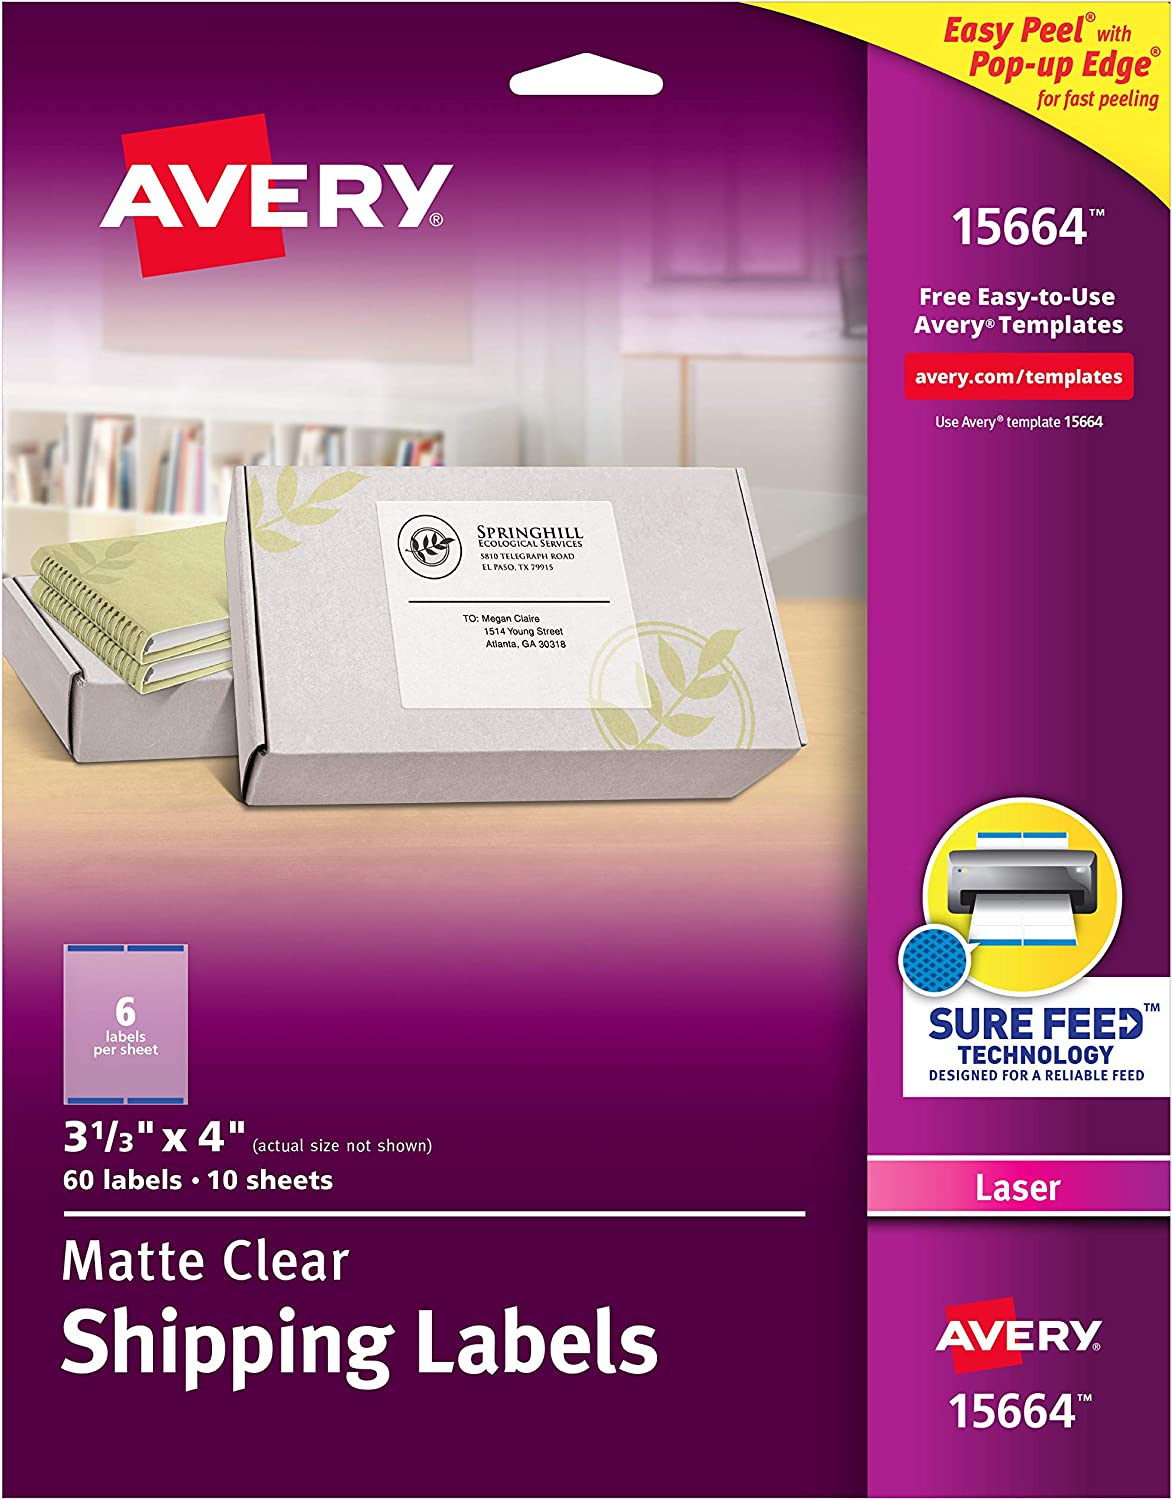 15664 Avery Clear Easy Peel Shipping Labels for Laser Printers 3-1//3 x 4 Box of 60